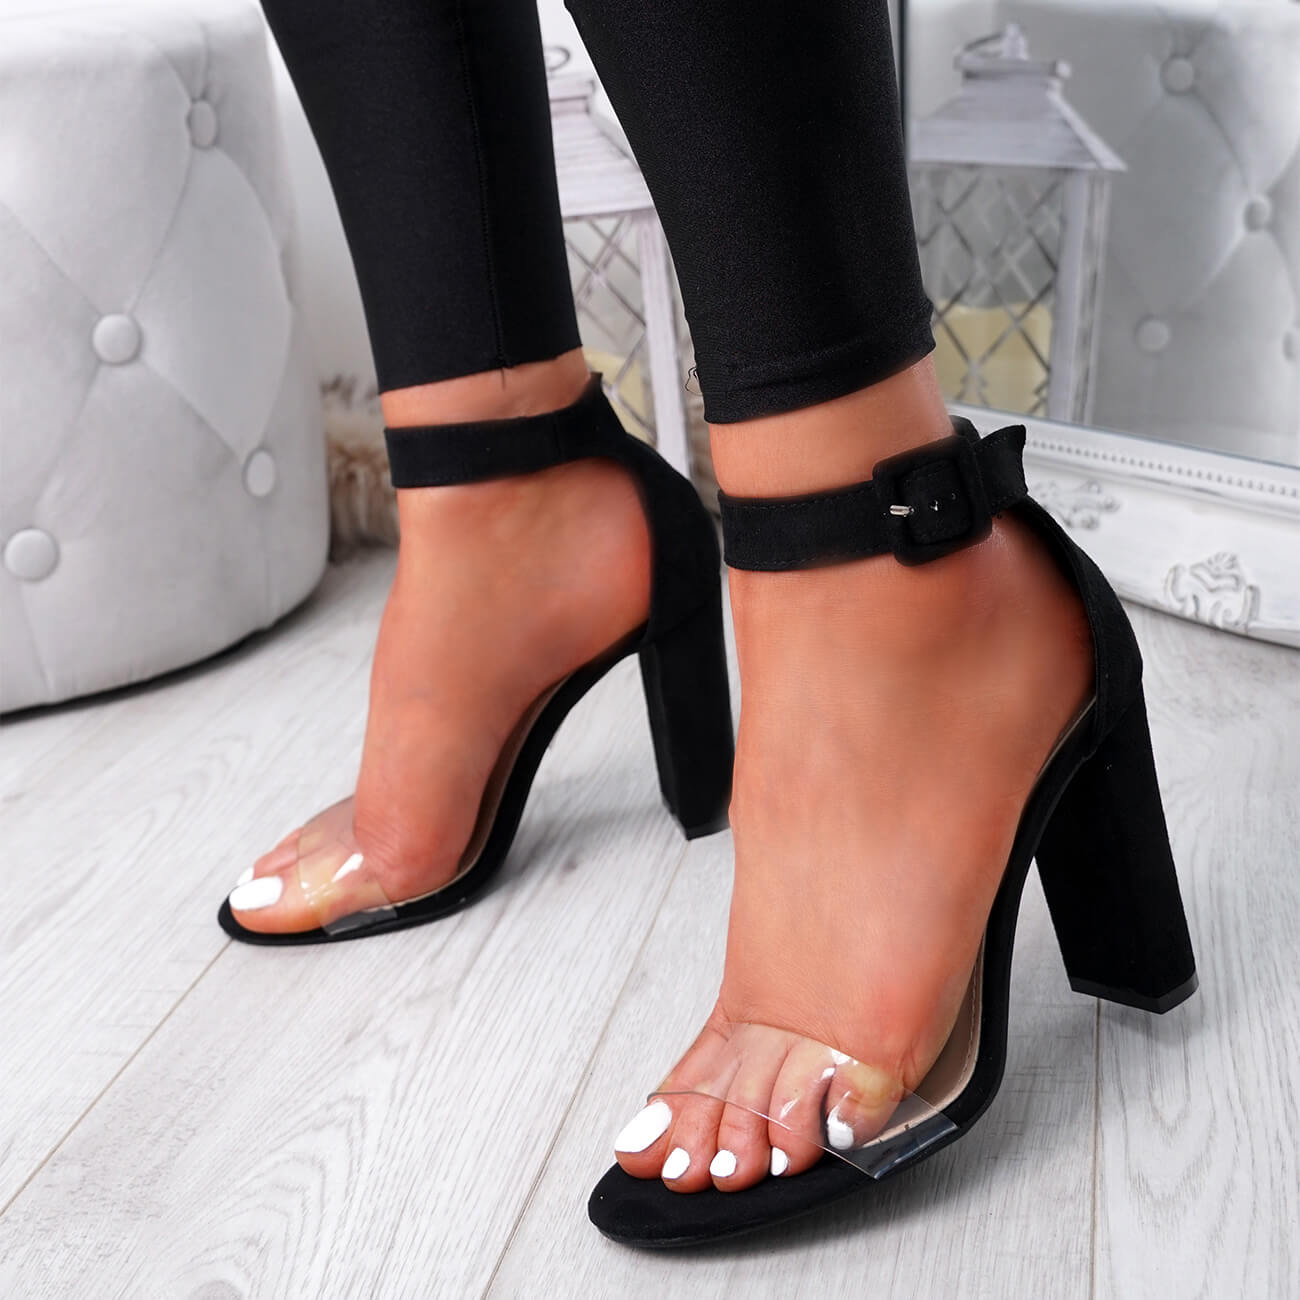 WOMENS-LADIES-HIGH-BLOCK-HEEL-PEEP-TOE-ANKLE-STRAP-SANDALS-PARTY-SHOES-SIZE thumbnail 13